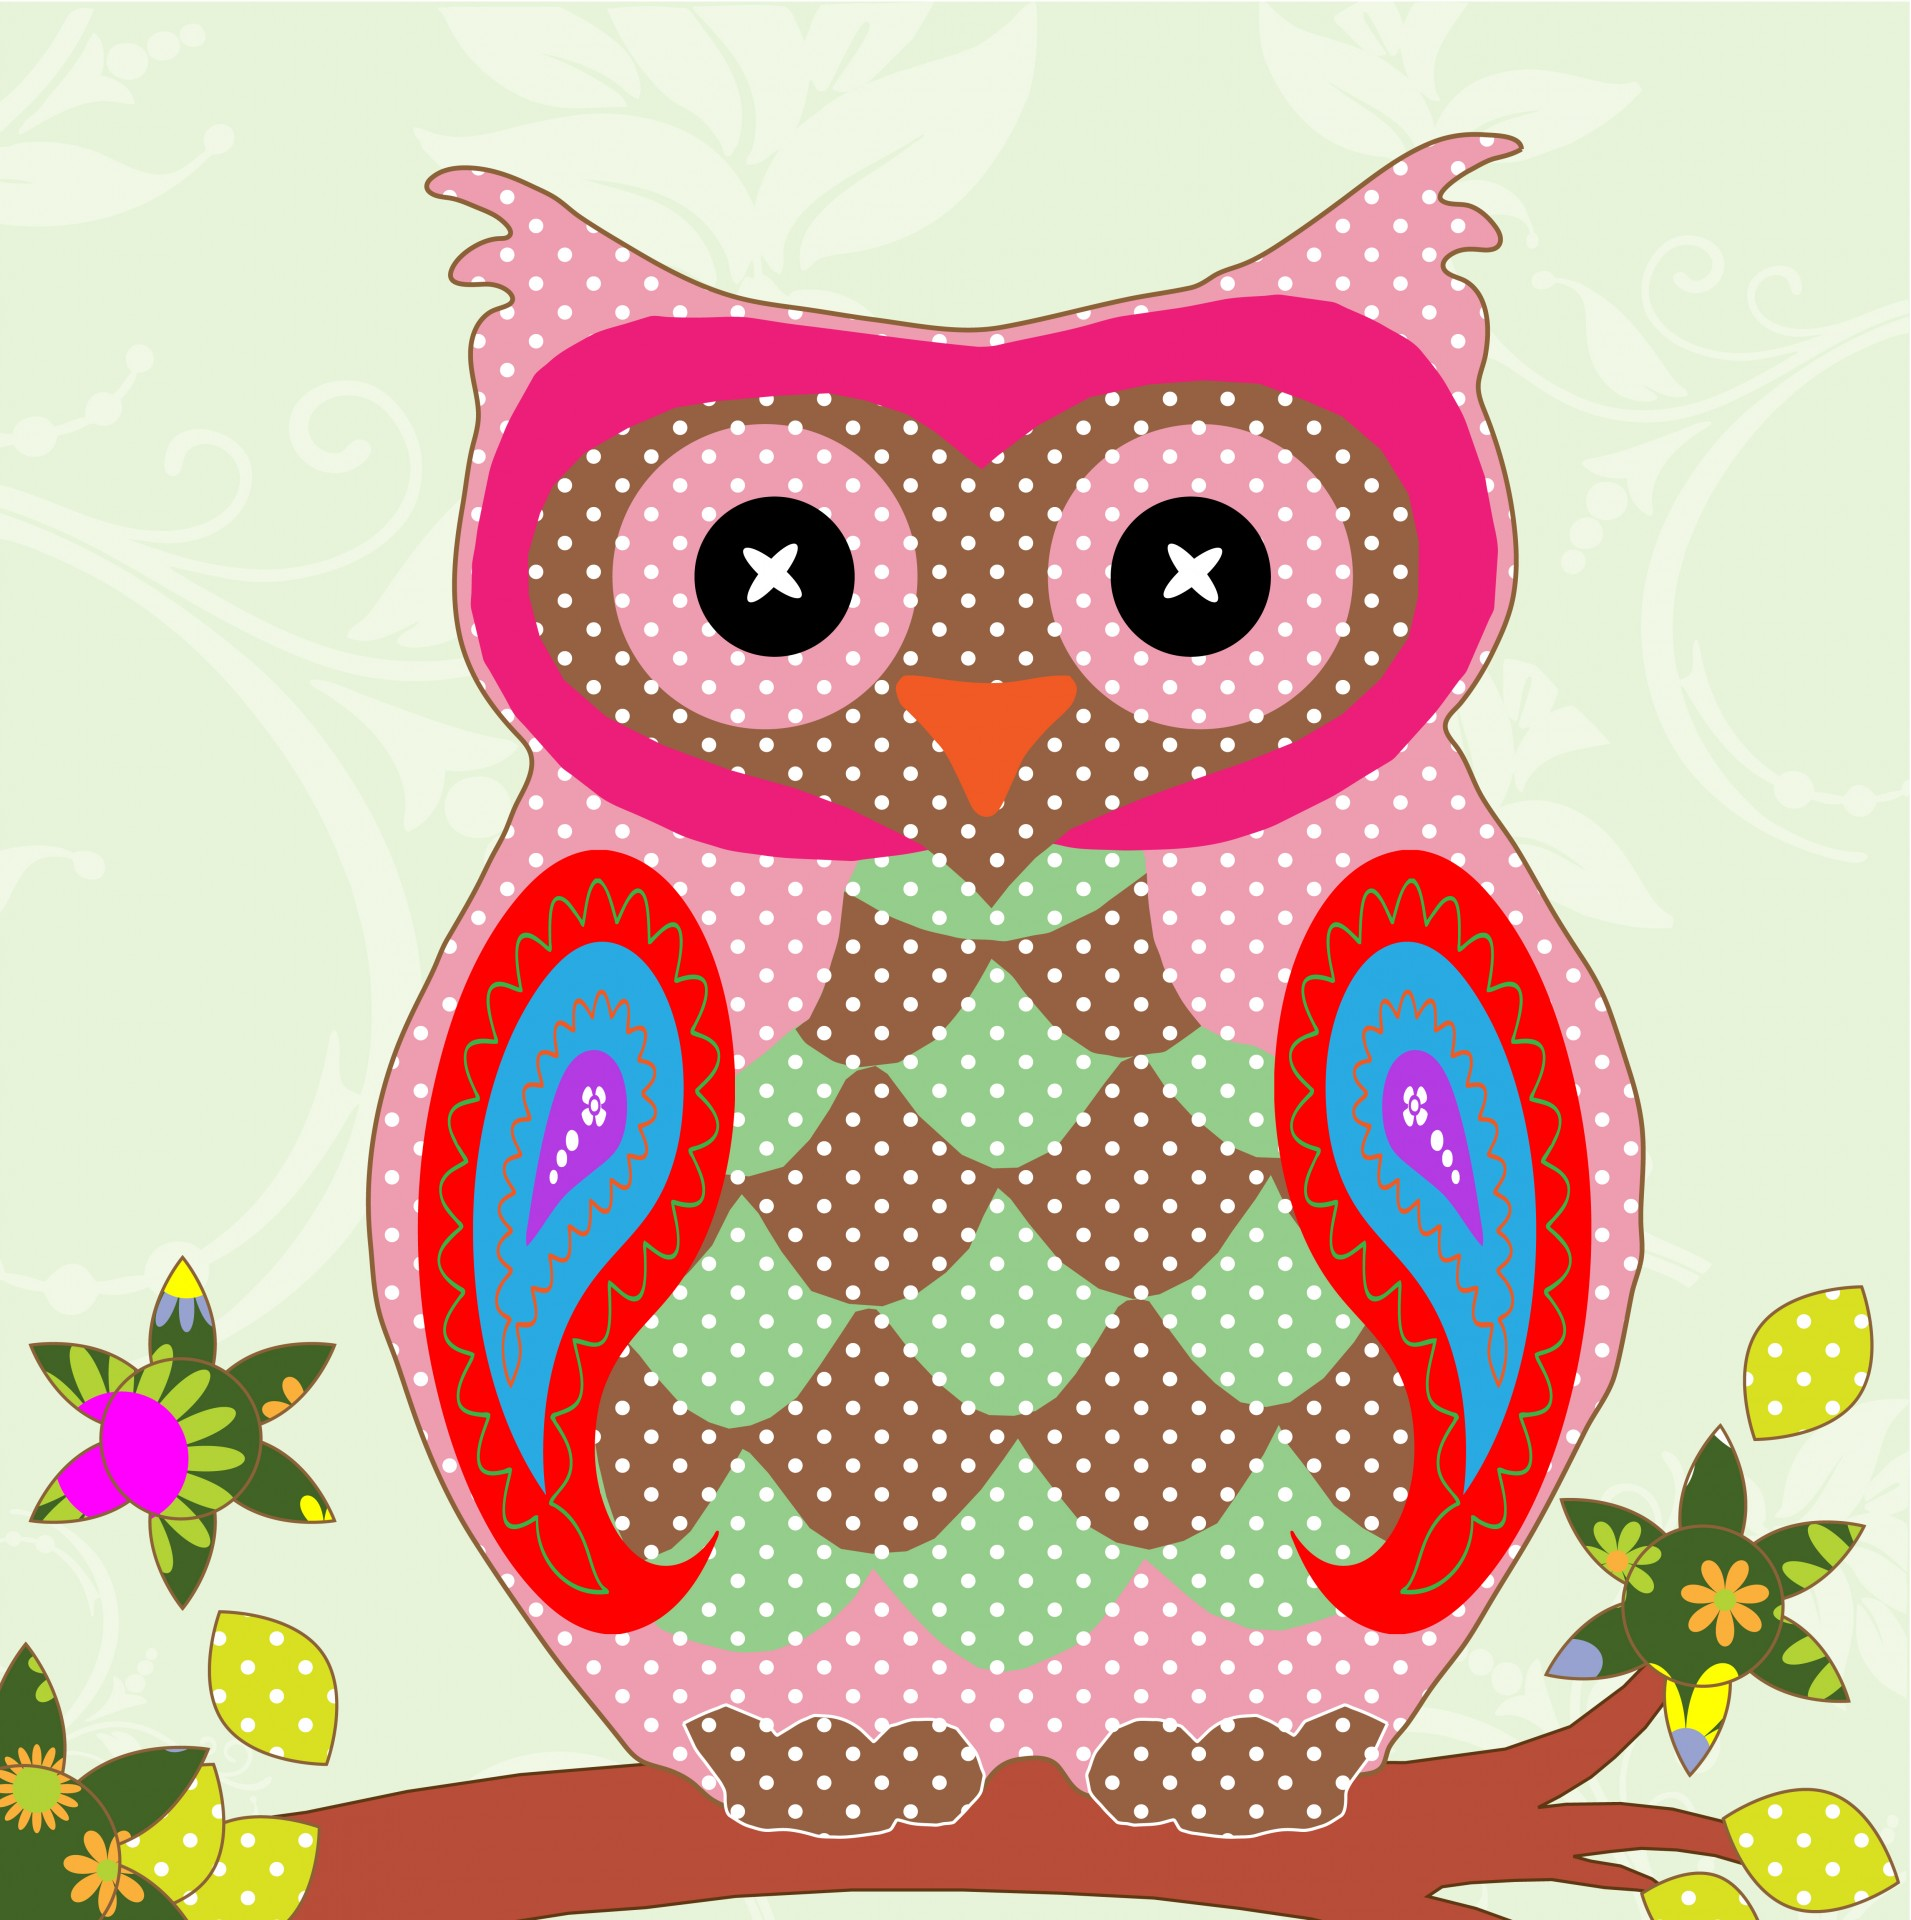 Colorful Pictures Of Owls Owl Colorful Patchwork Art Free Stock Photo Public